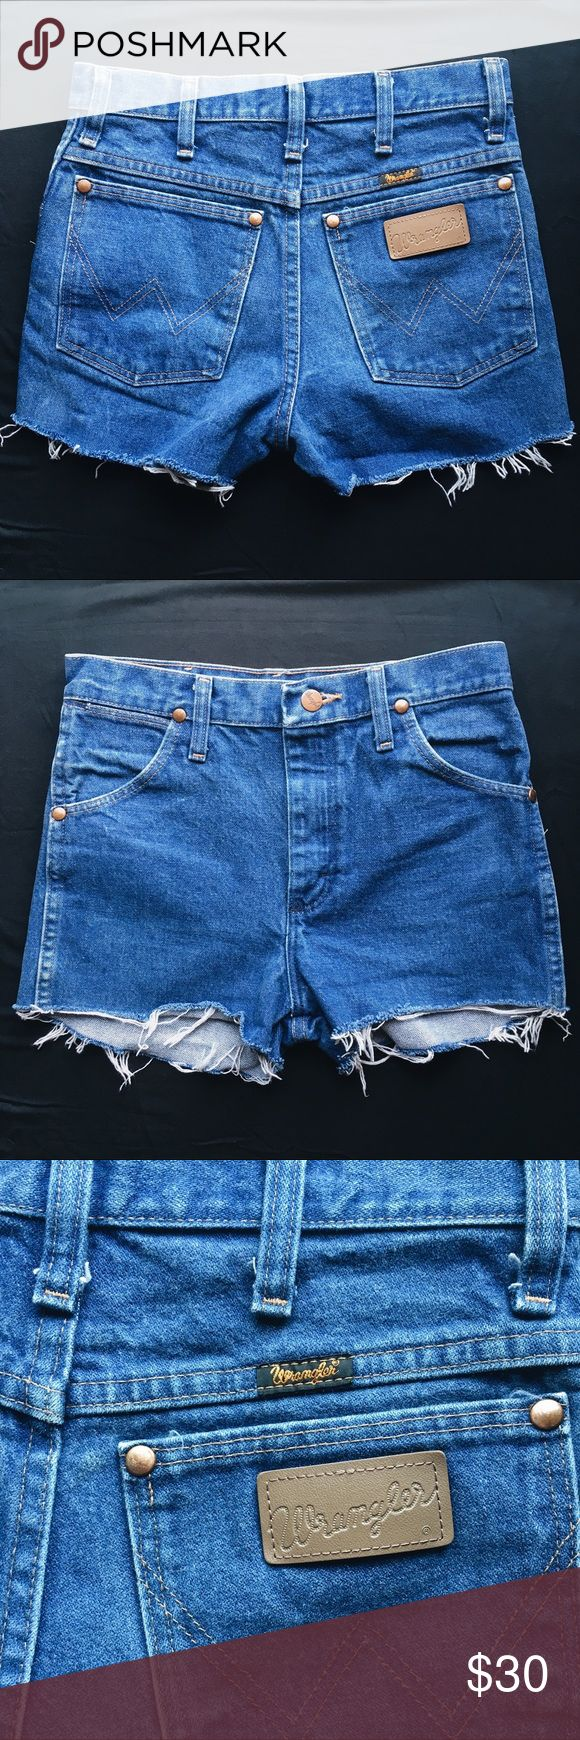 Vintage Wrangler high rise jean shorts 24 Super cute vintage denim shorts in a medium blue wash. Ordered online and they were way too small for me. I'm completely guessing on the true size here, so please measure yourself before buying. These are best for someone with very narrow hips. Rise: 10.5 in, Inseam: 2in, Waist: 26 in, Hips: 33 in Wrangler Shorts Jean Shorts